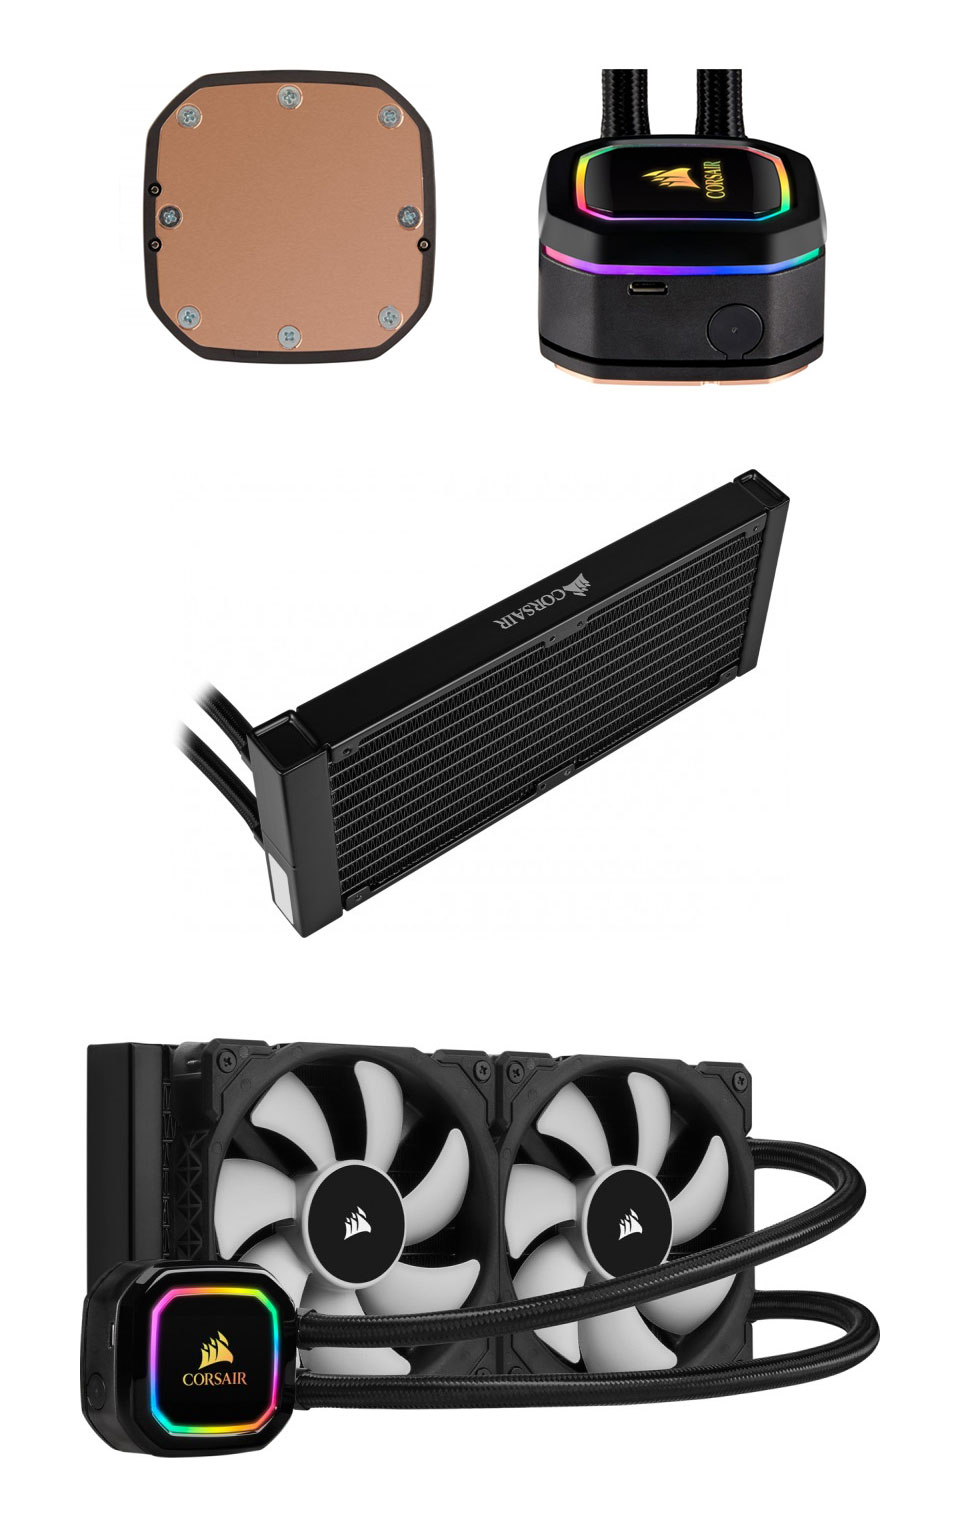 Corsair iCUE H100i RGB Pro XT 240mm AIO CPU Cooler product